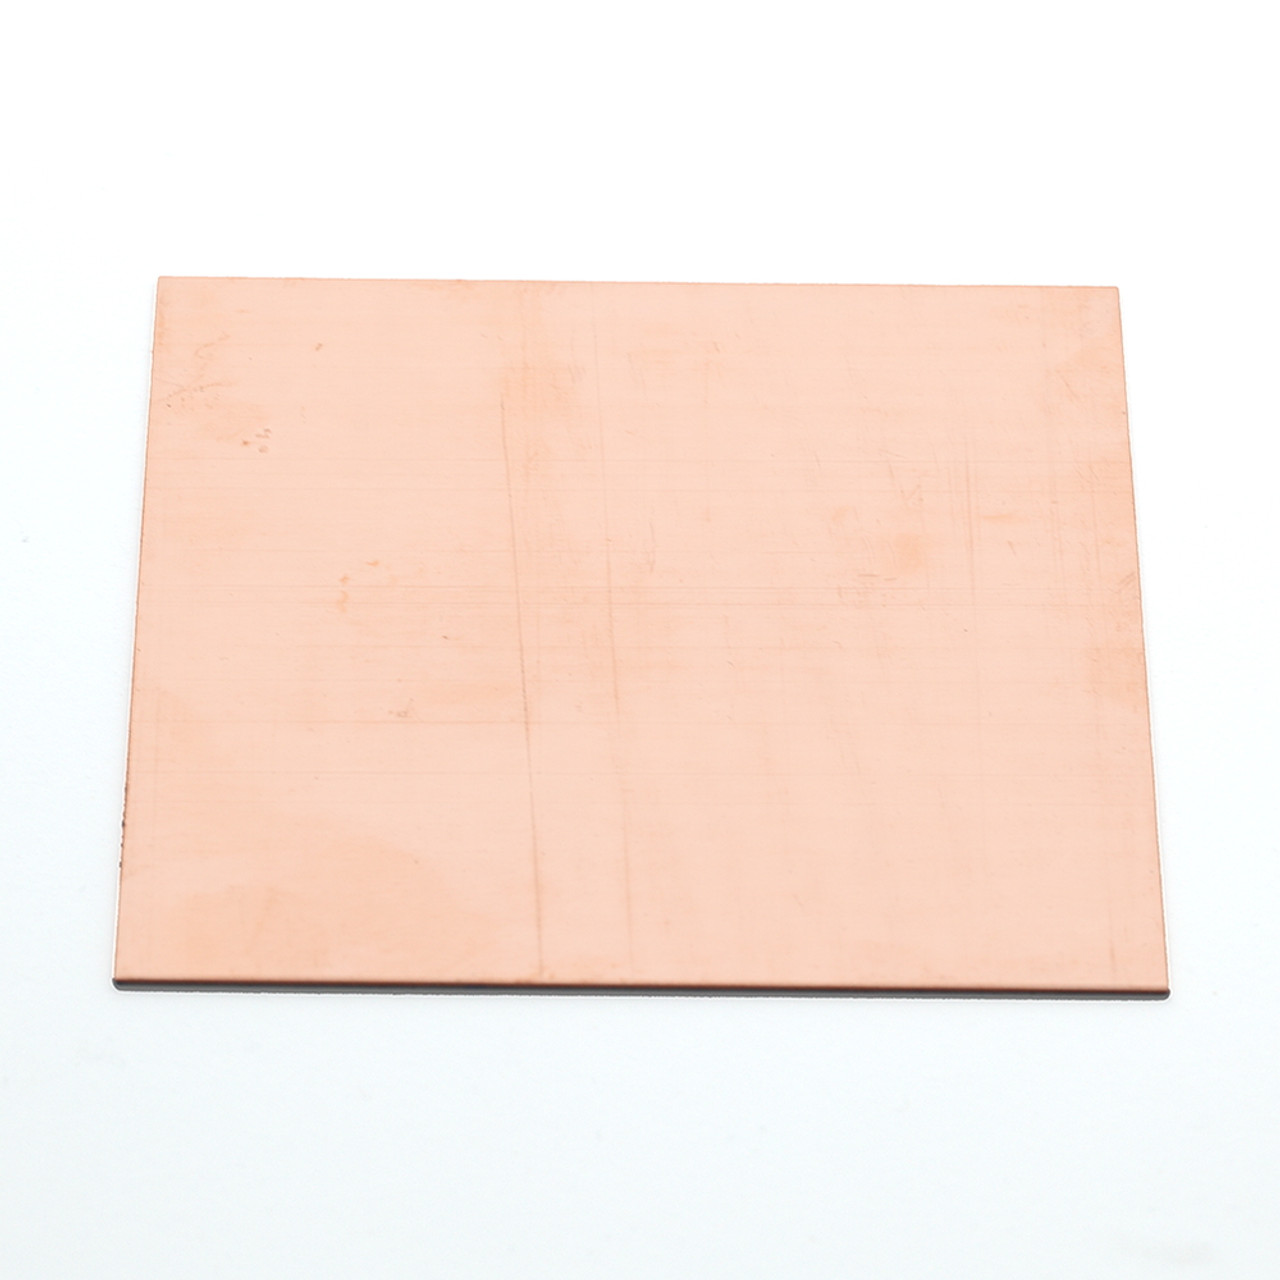 Square copper sheet for enamelling & other crafts